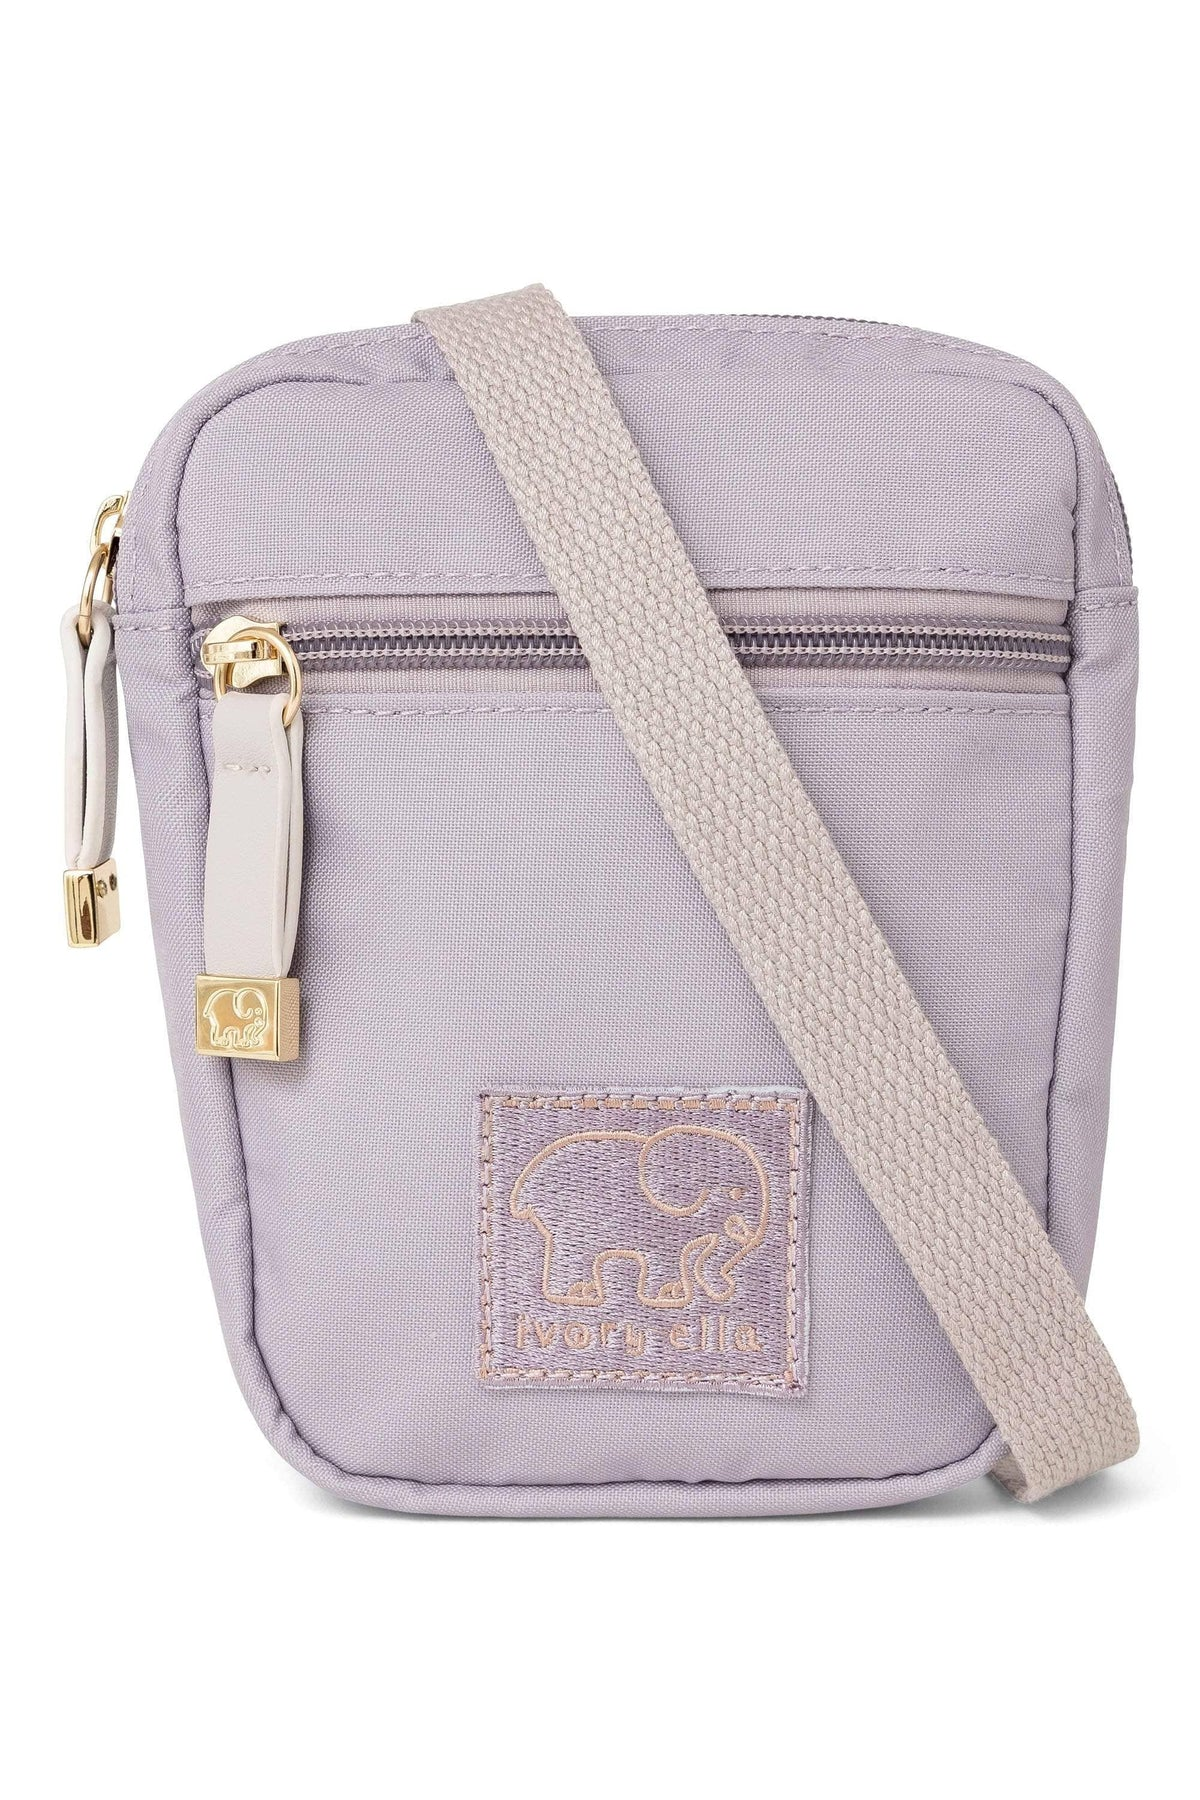 Ivory Ella Accessories OS Lilac Marble Crossbody Zip Bag